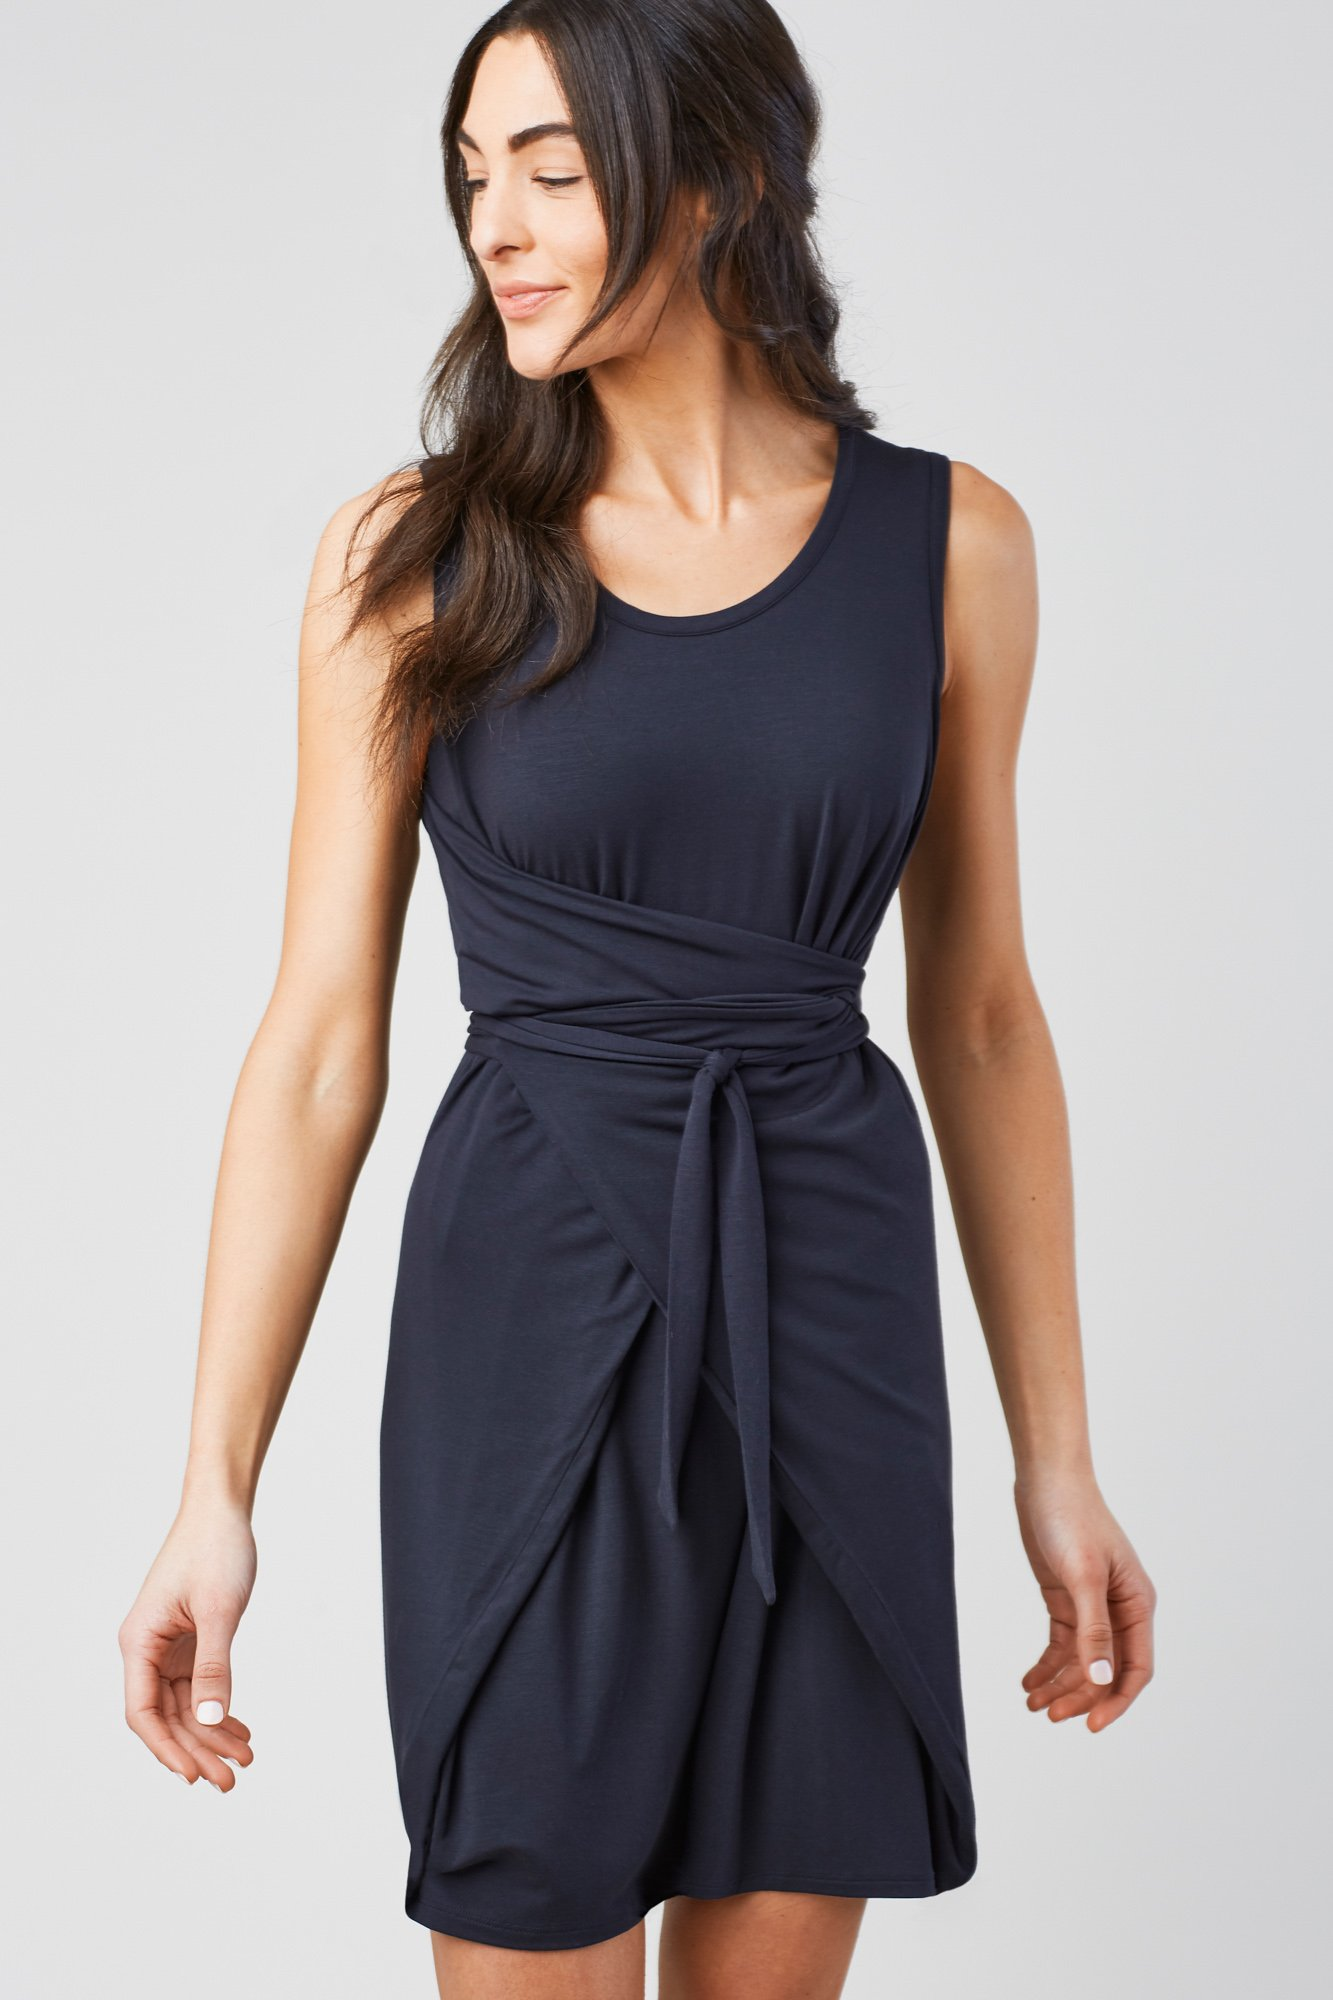 United by blue vista convertible dress